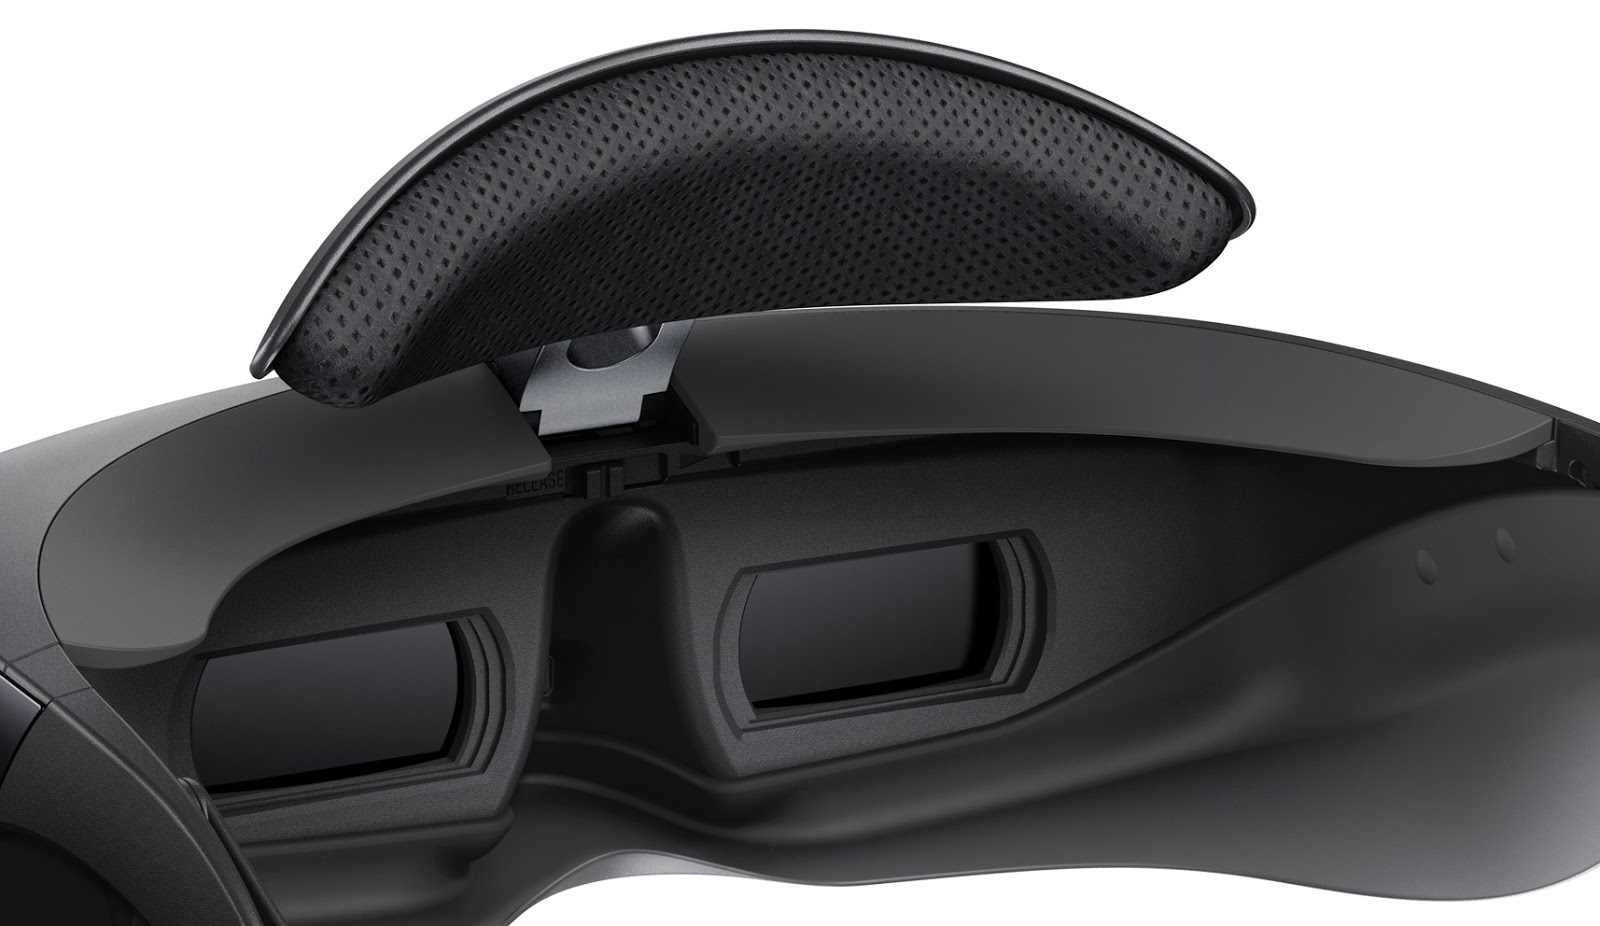 Sony HMZ-T3W Personal 3D Viewer Image